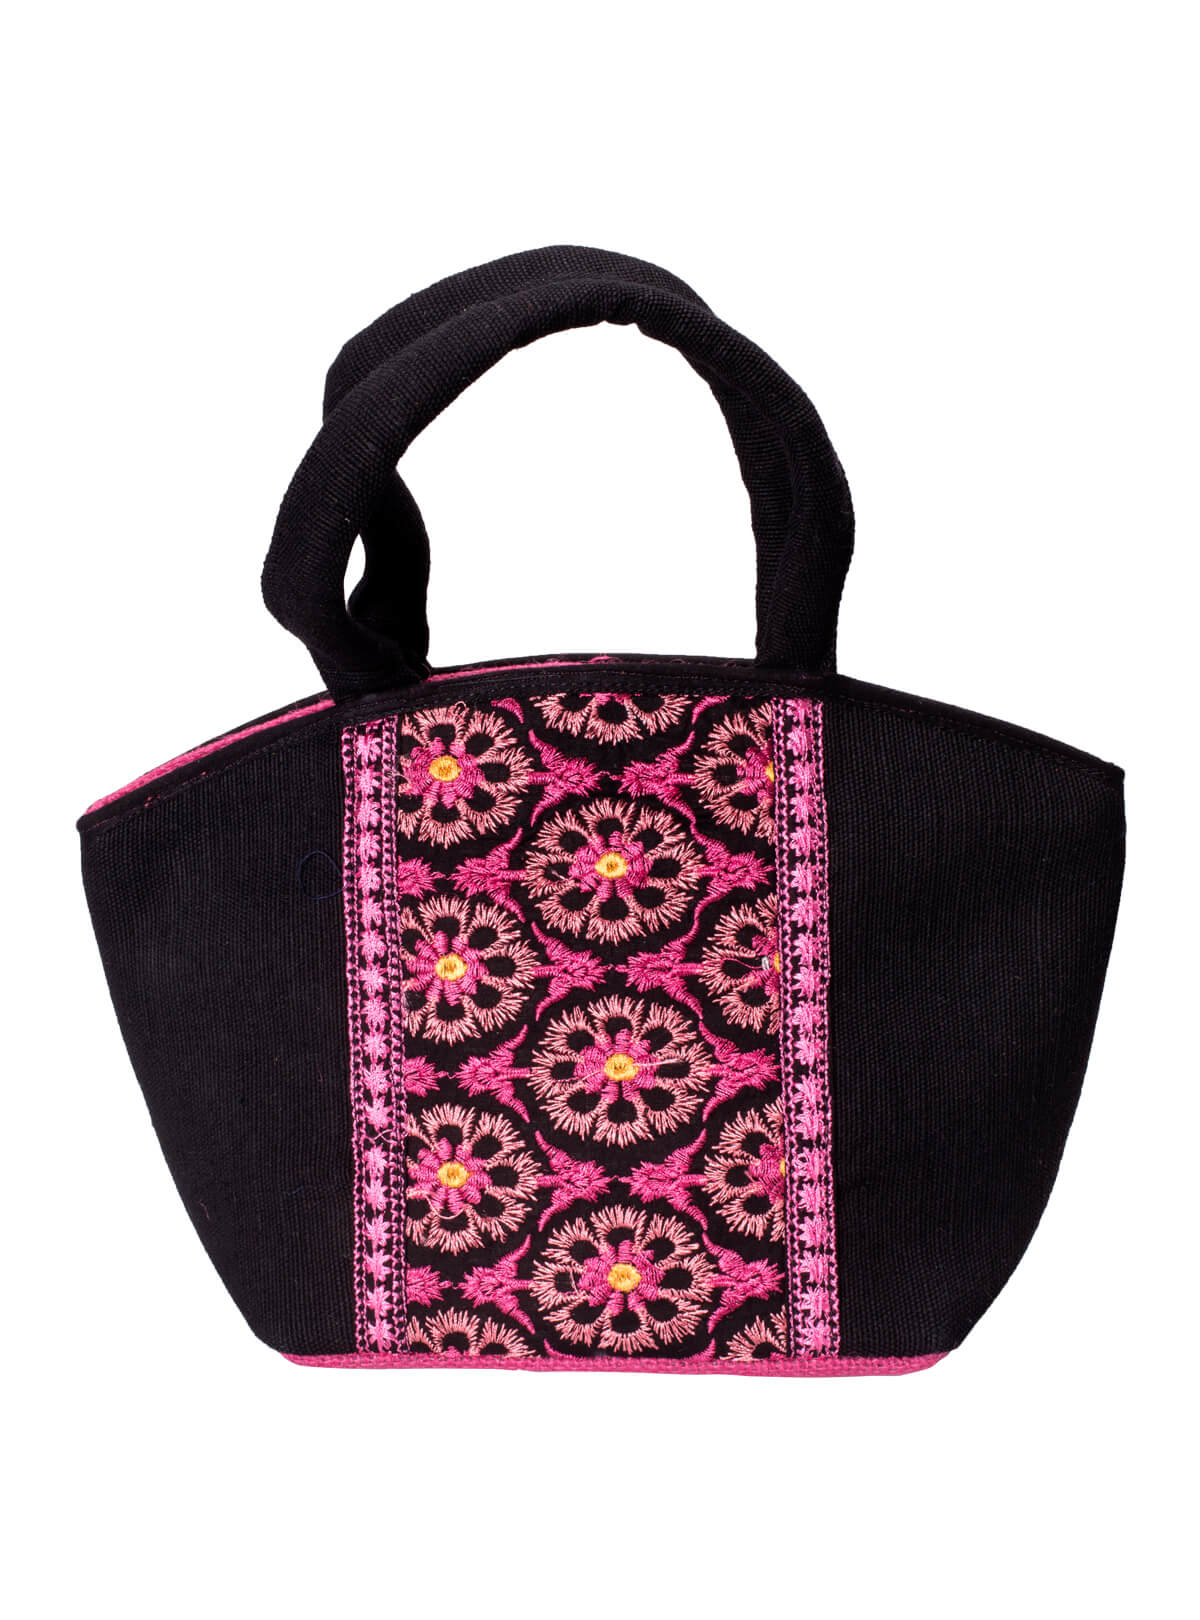 Black & Pink Jute Embroidered Ladies Tunny Bag